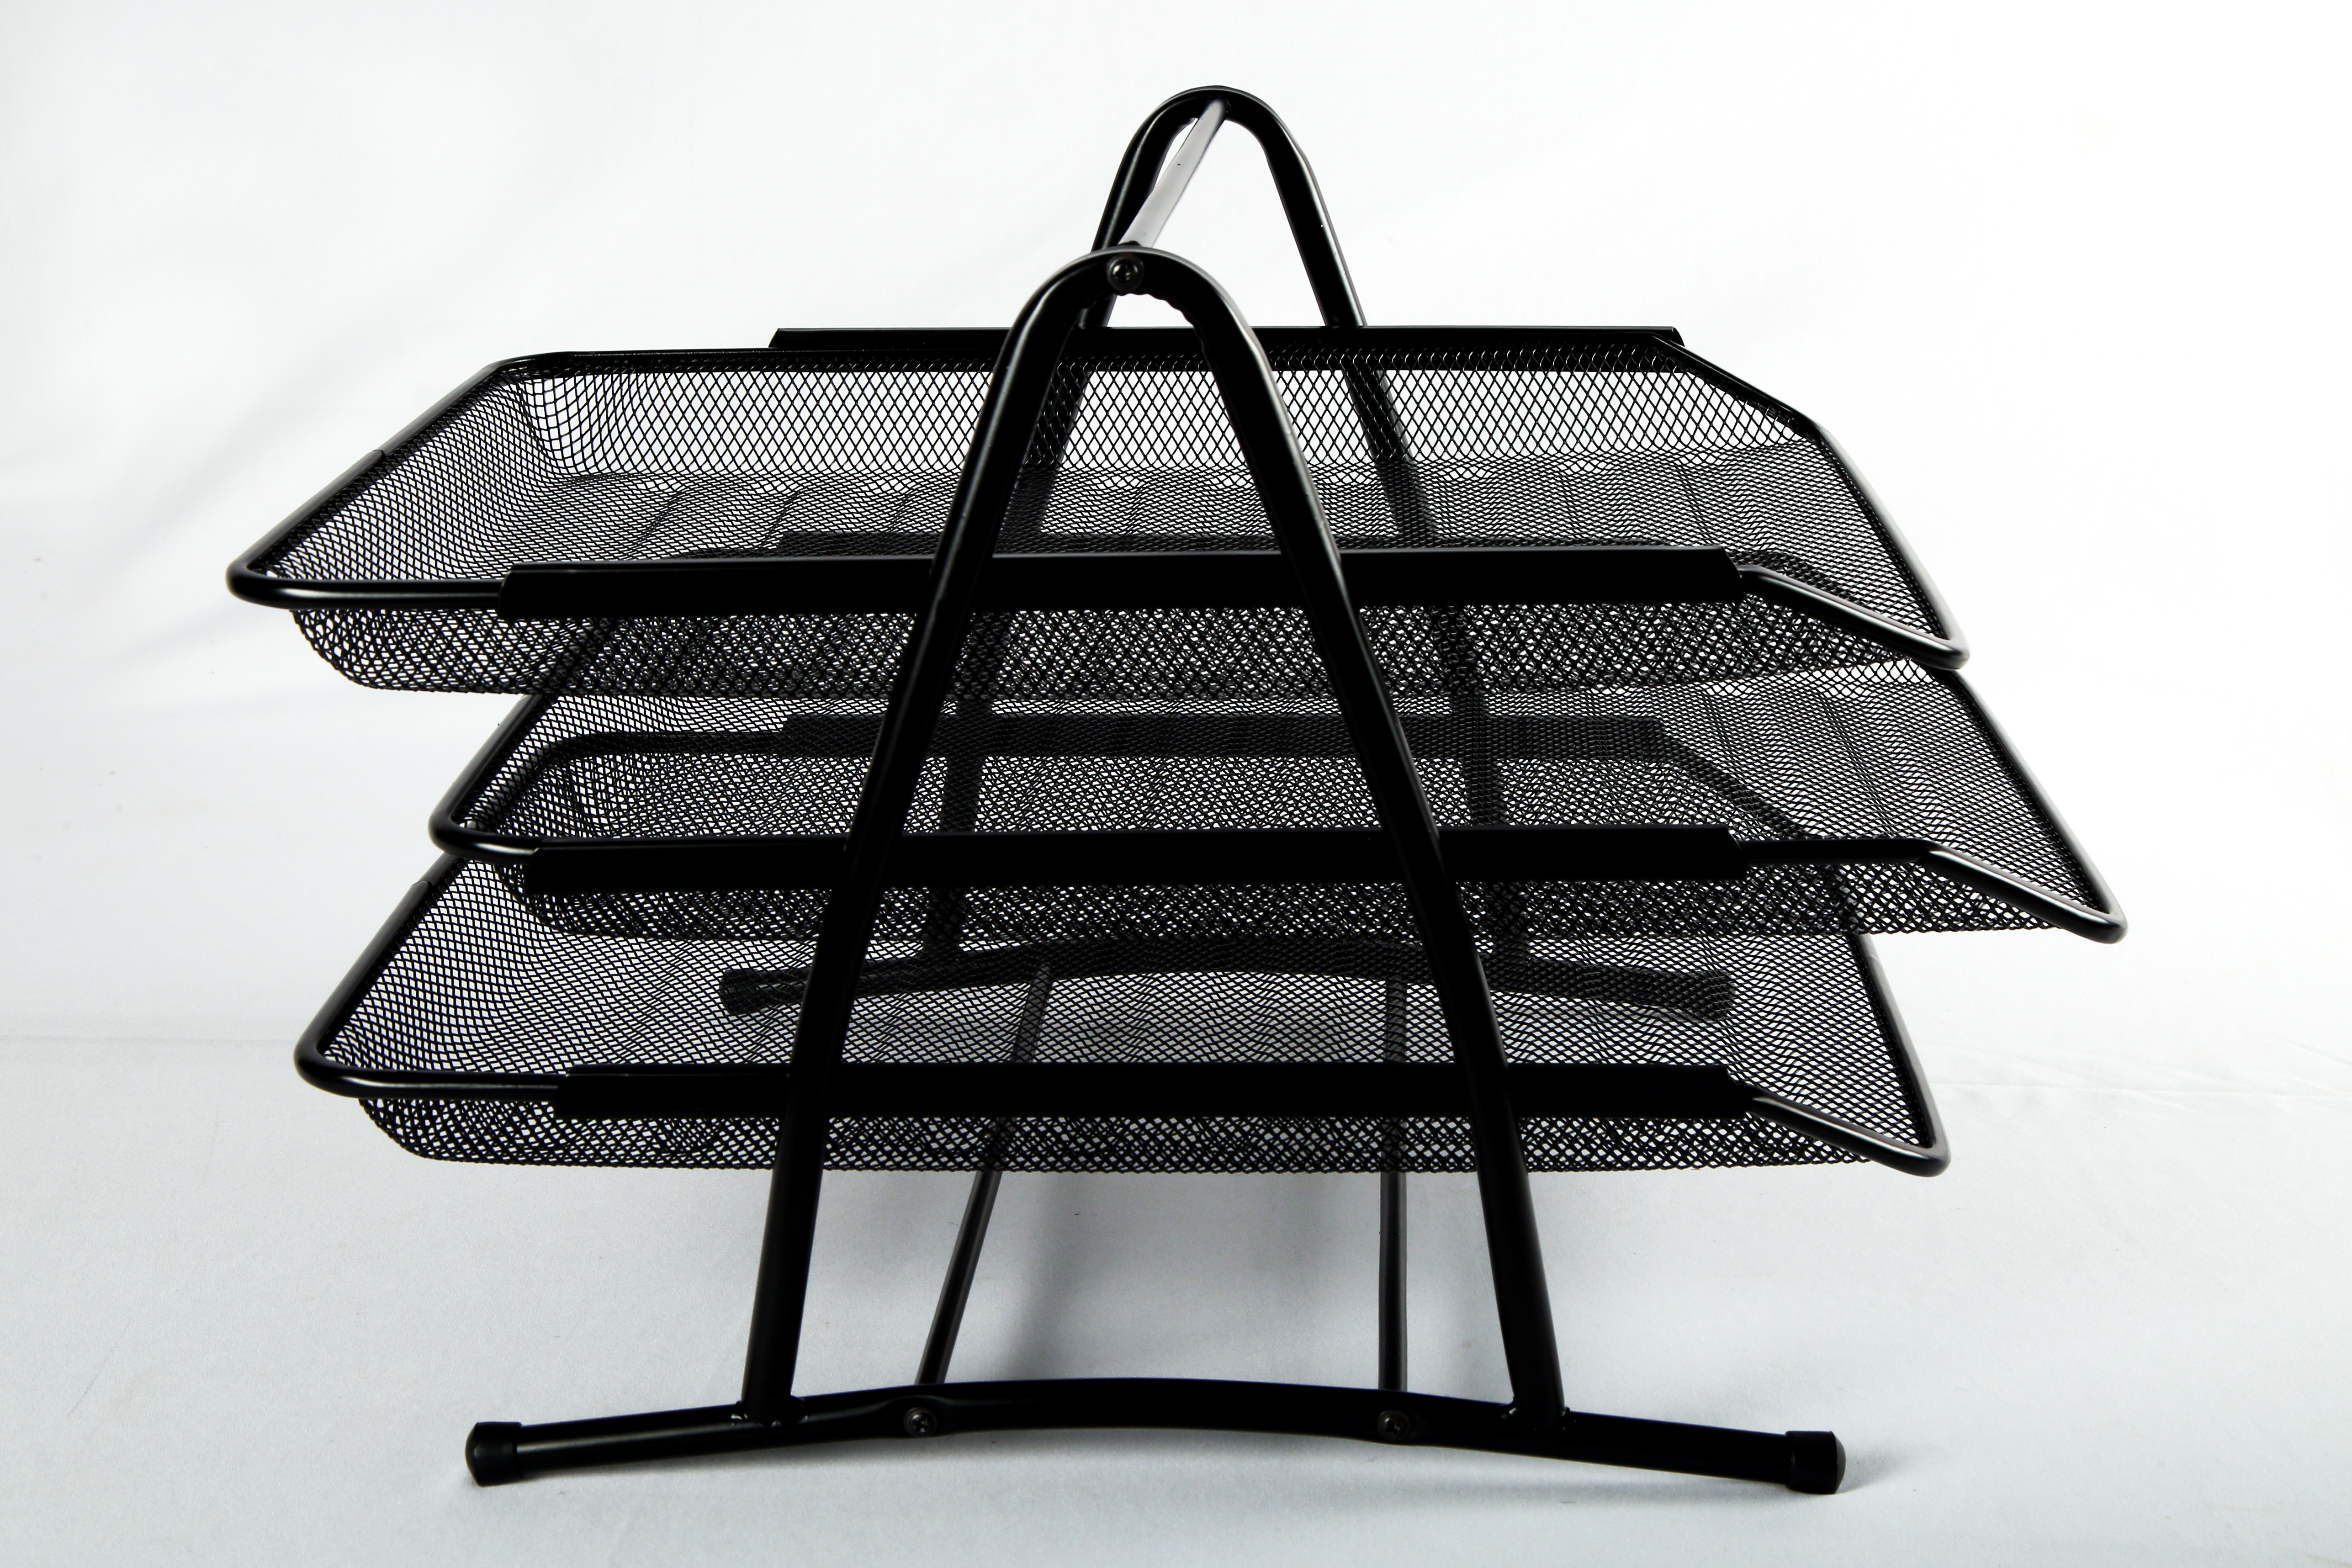 9205 DOCUMENT TRAY 3 TIER